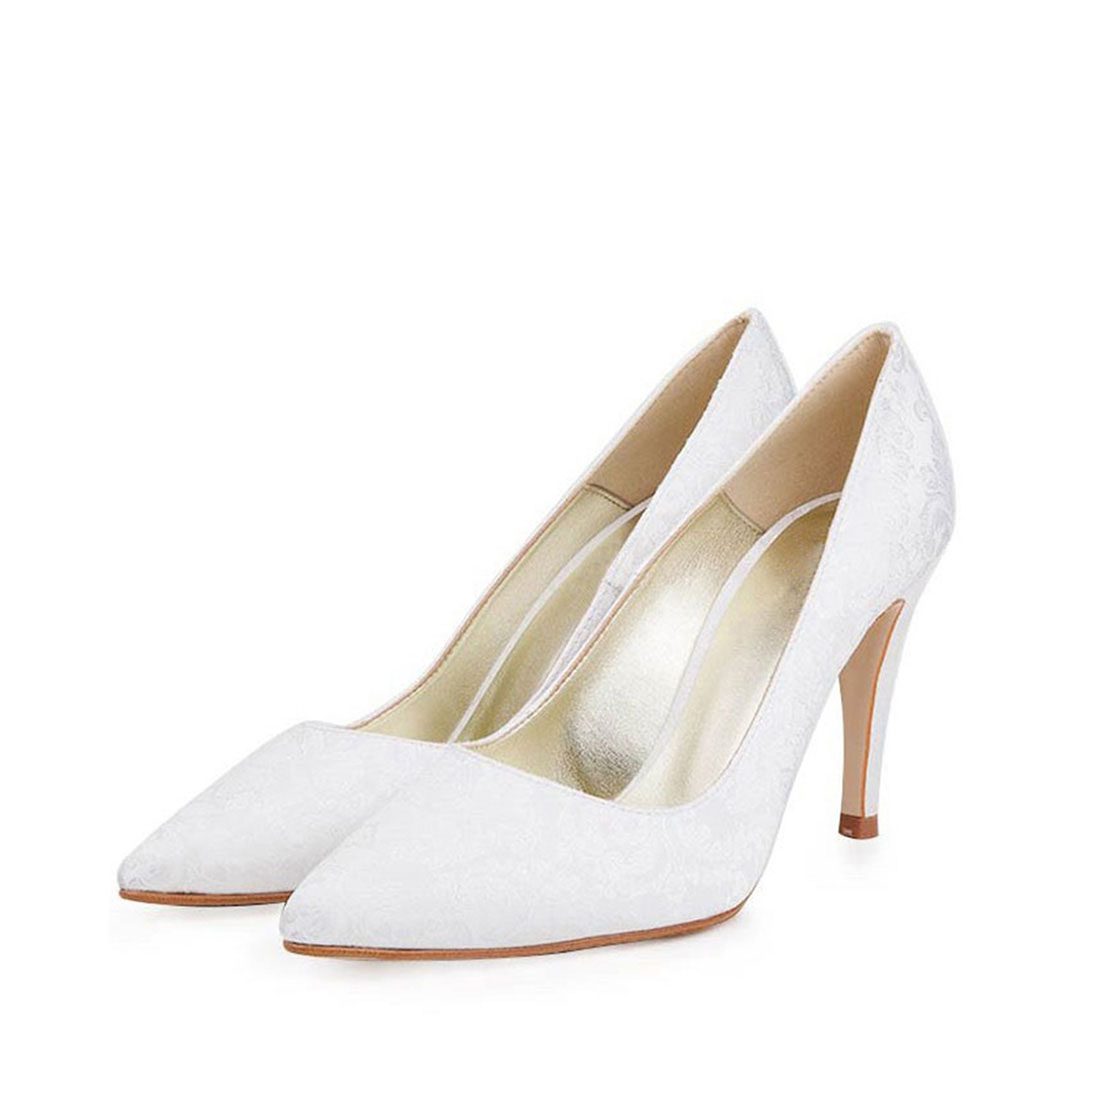 Classical style white women high heel pump dress shoes YB2044